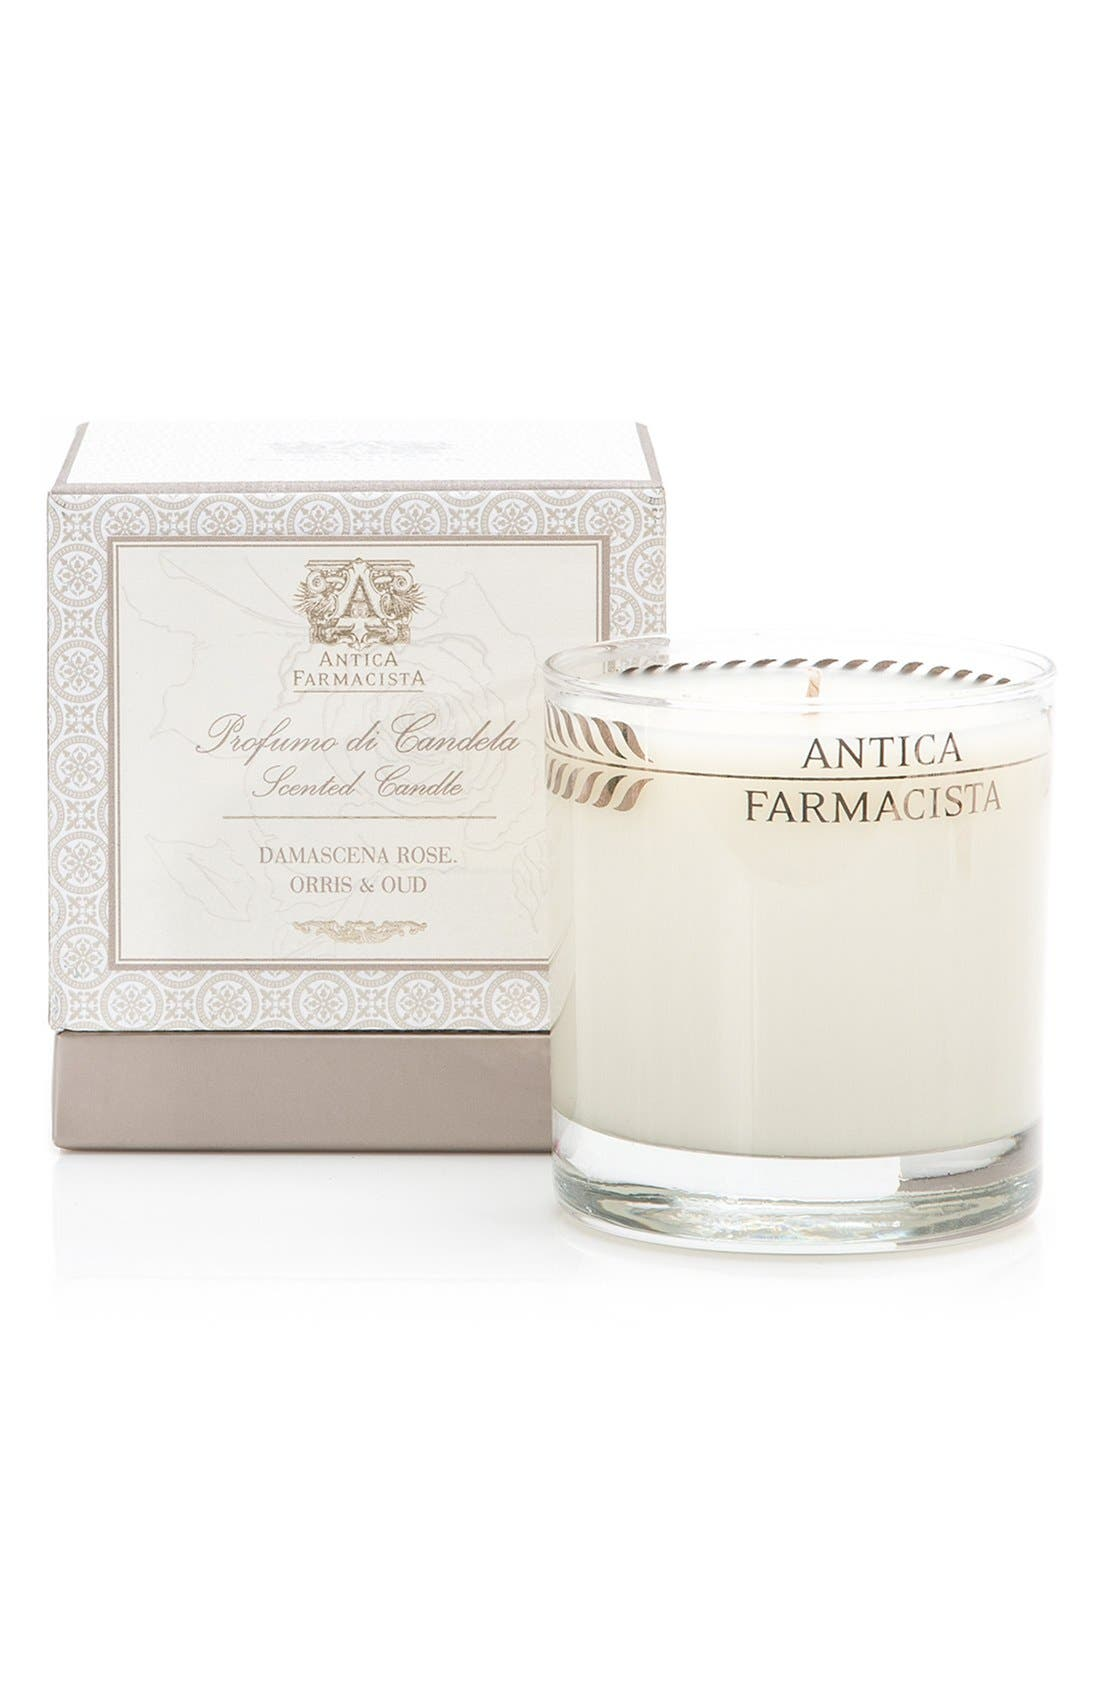 ANTICA FARMACISTA 'Damascena Rose, Orris & Oud' Candle